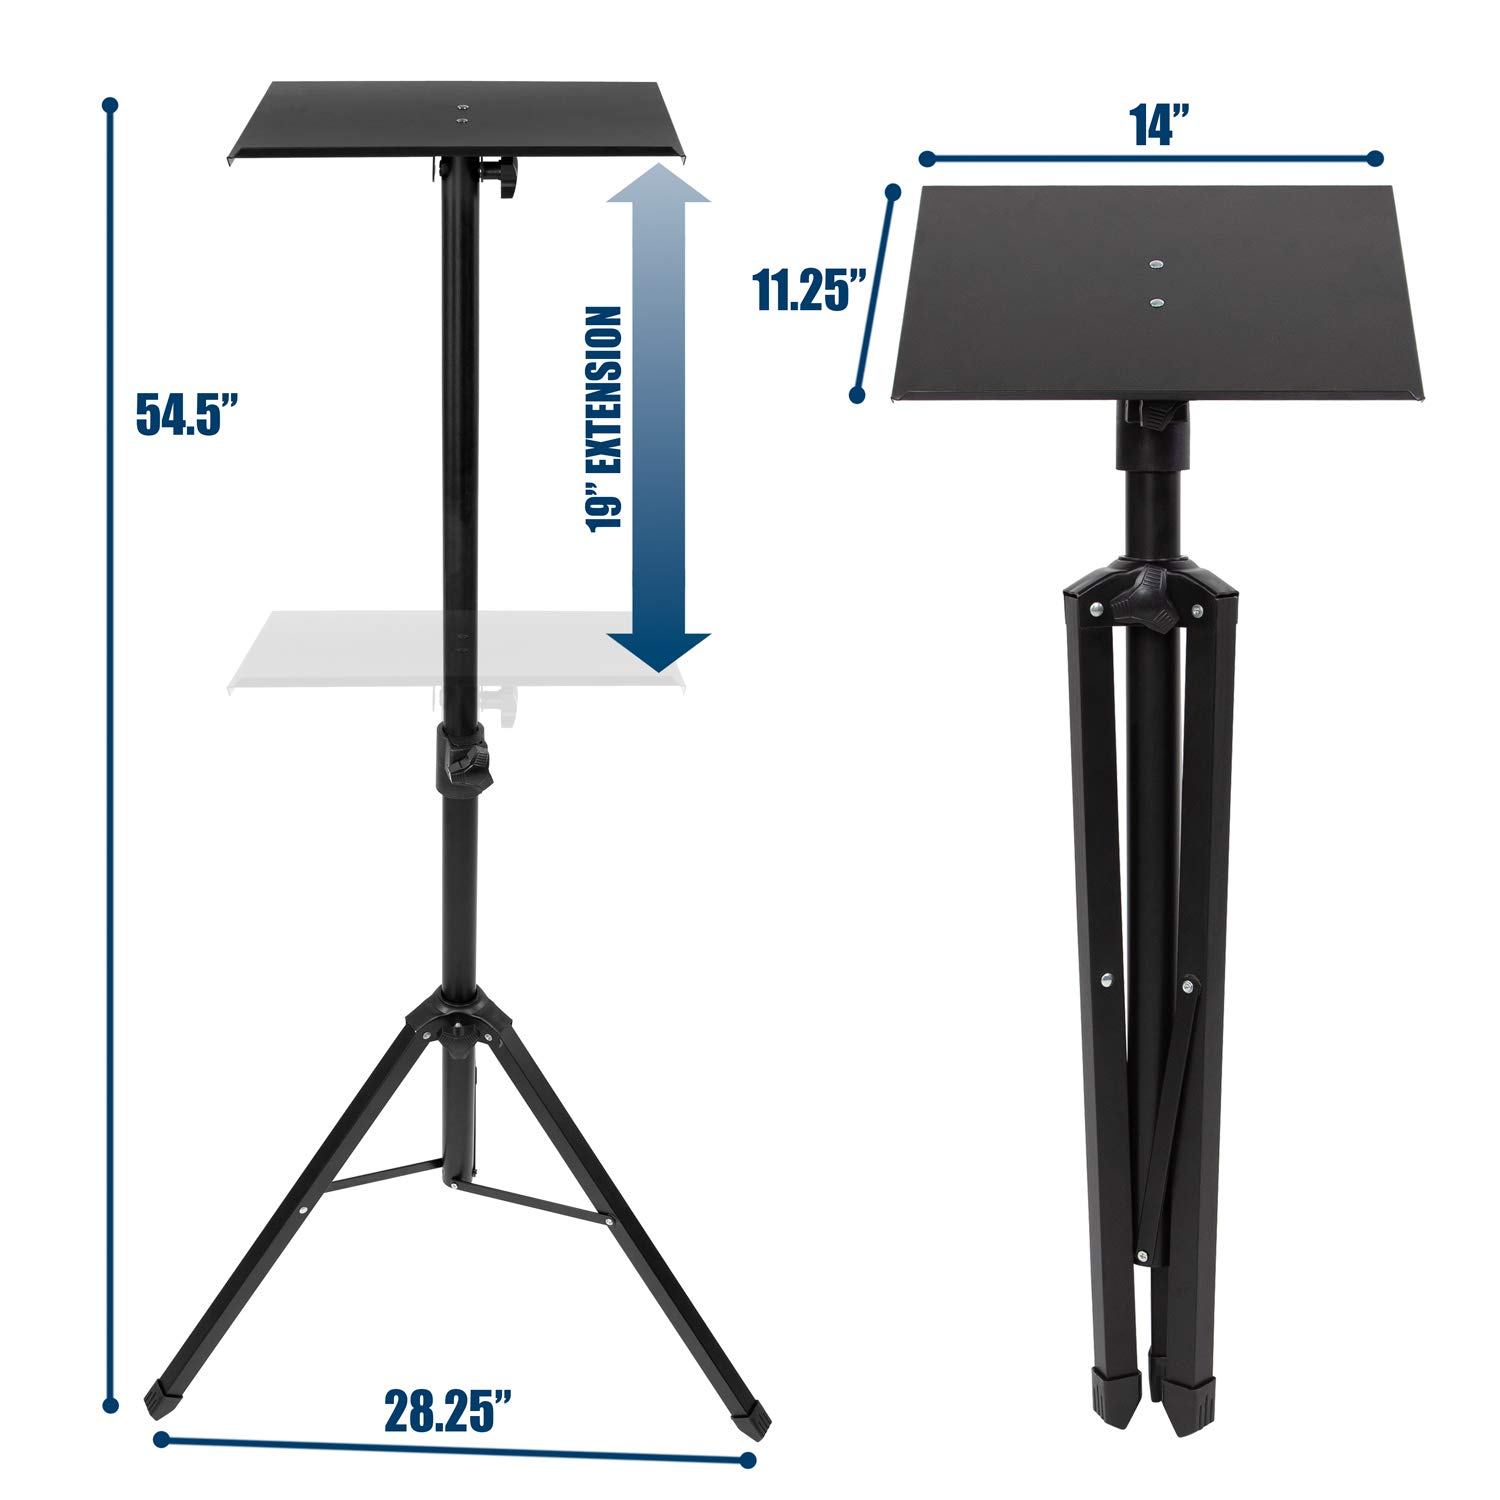 Mount-It! Tripod Projector Stand, Adjustable DJ Laptop Stand with Height and Tilt Adjustment, Portable Laptop Projector Table with Steel Tripod Base and Tray, Black by Mount-It! (Image #7)